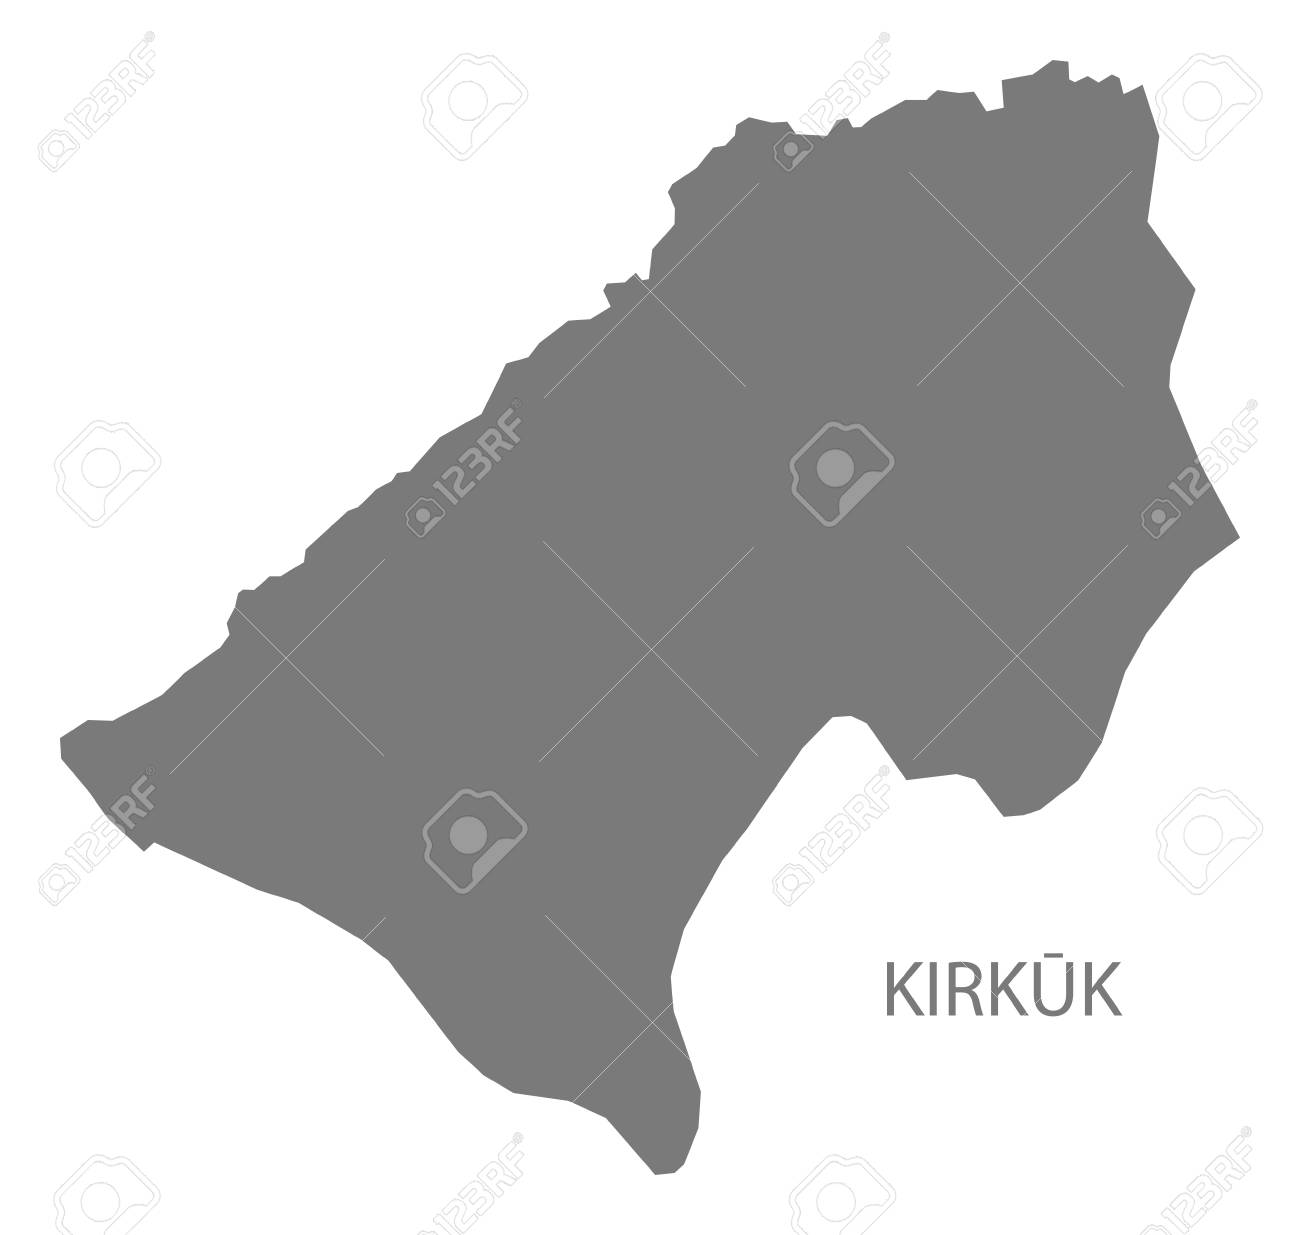 Kirkuk Iraq Map Grey Illustration Silhouette Royalty Free Cliparts